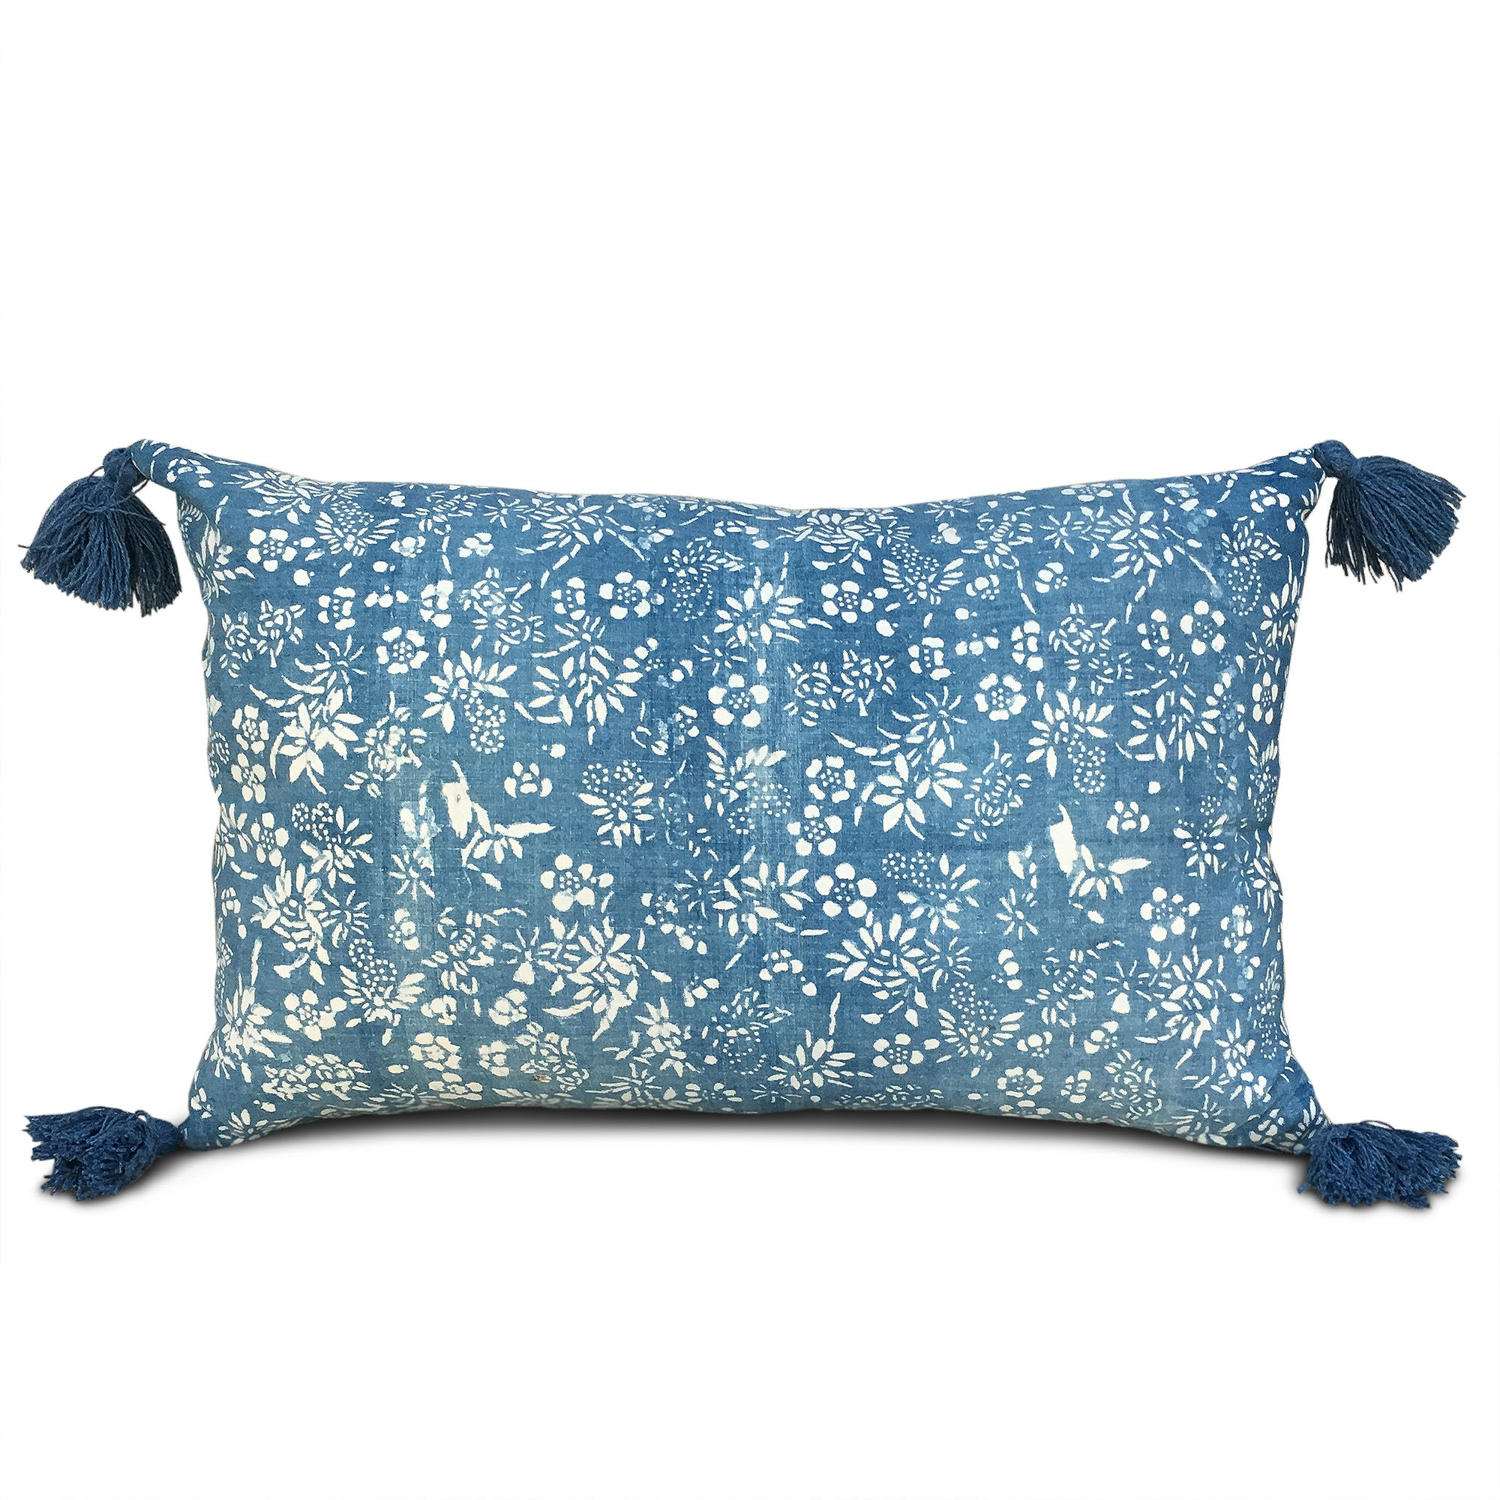 Indigo Resist Cushion with Blue Tassels